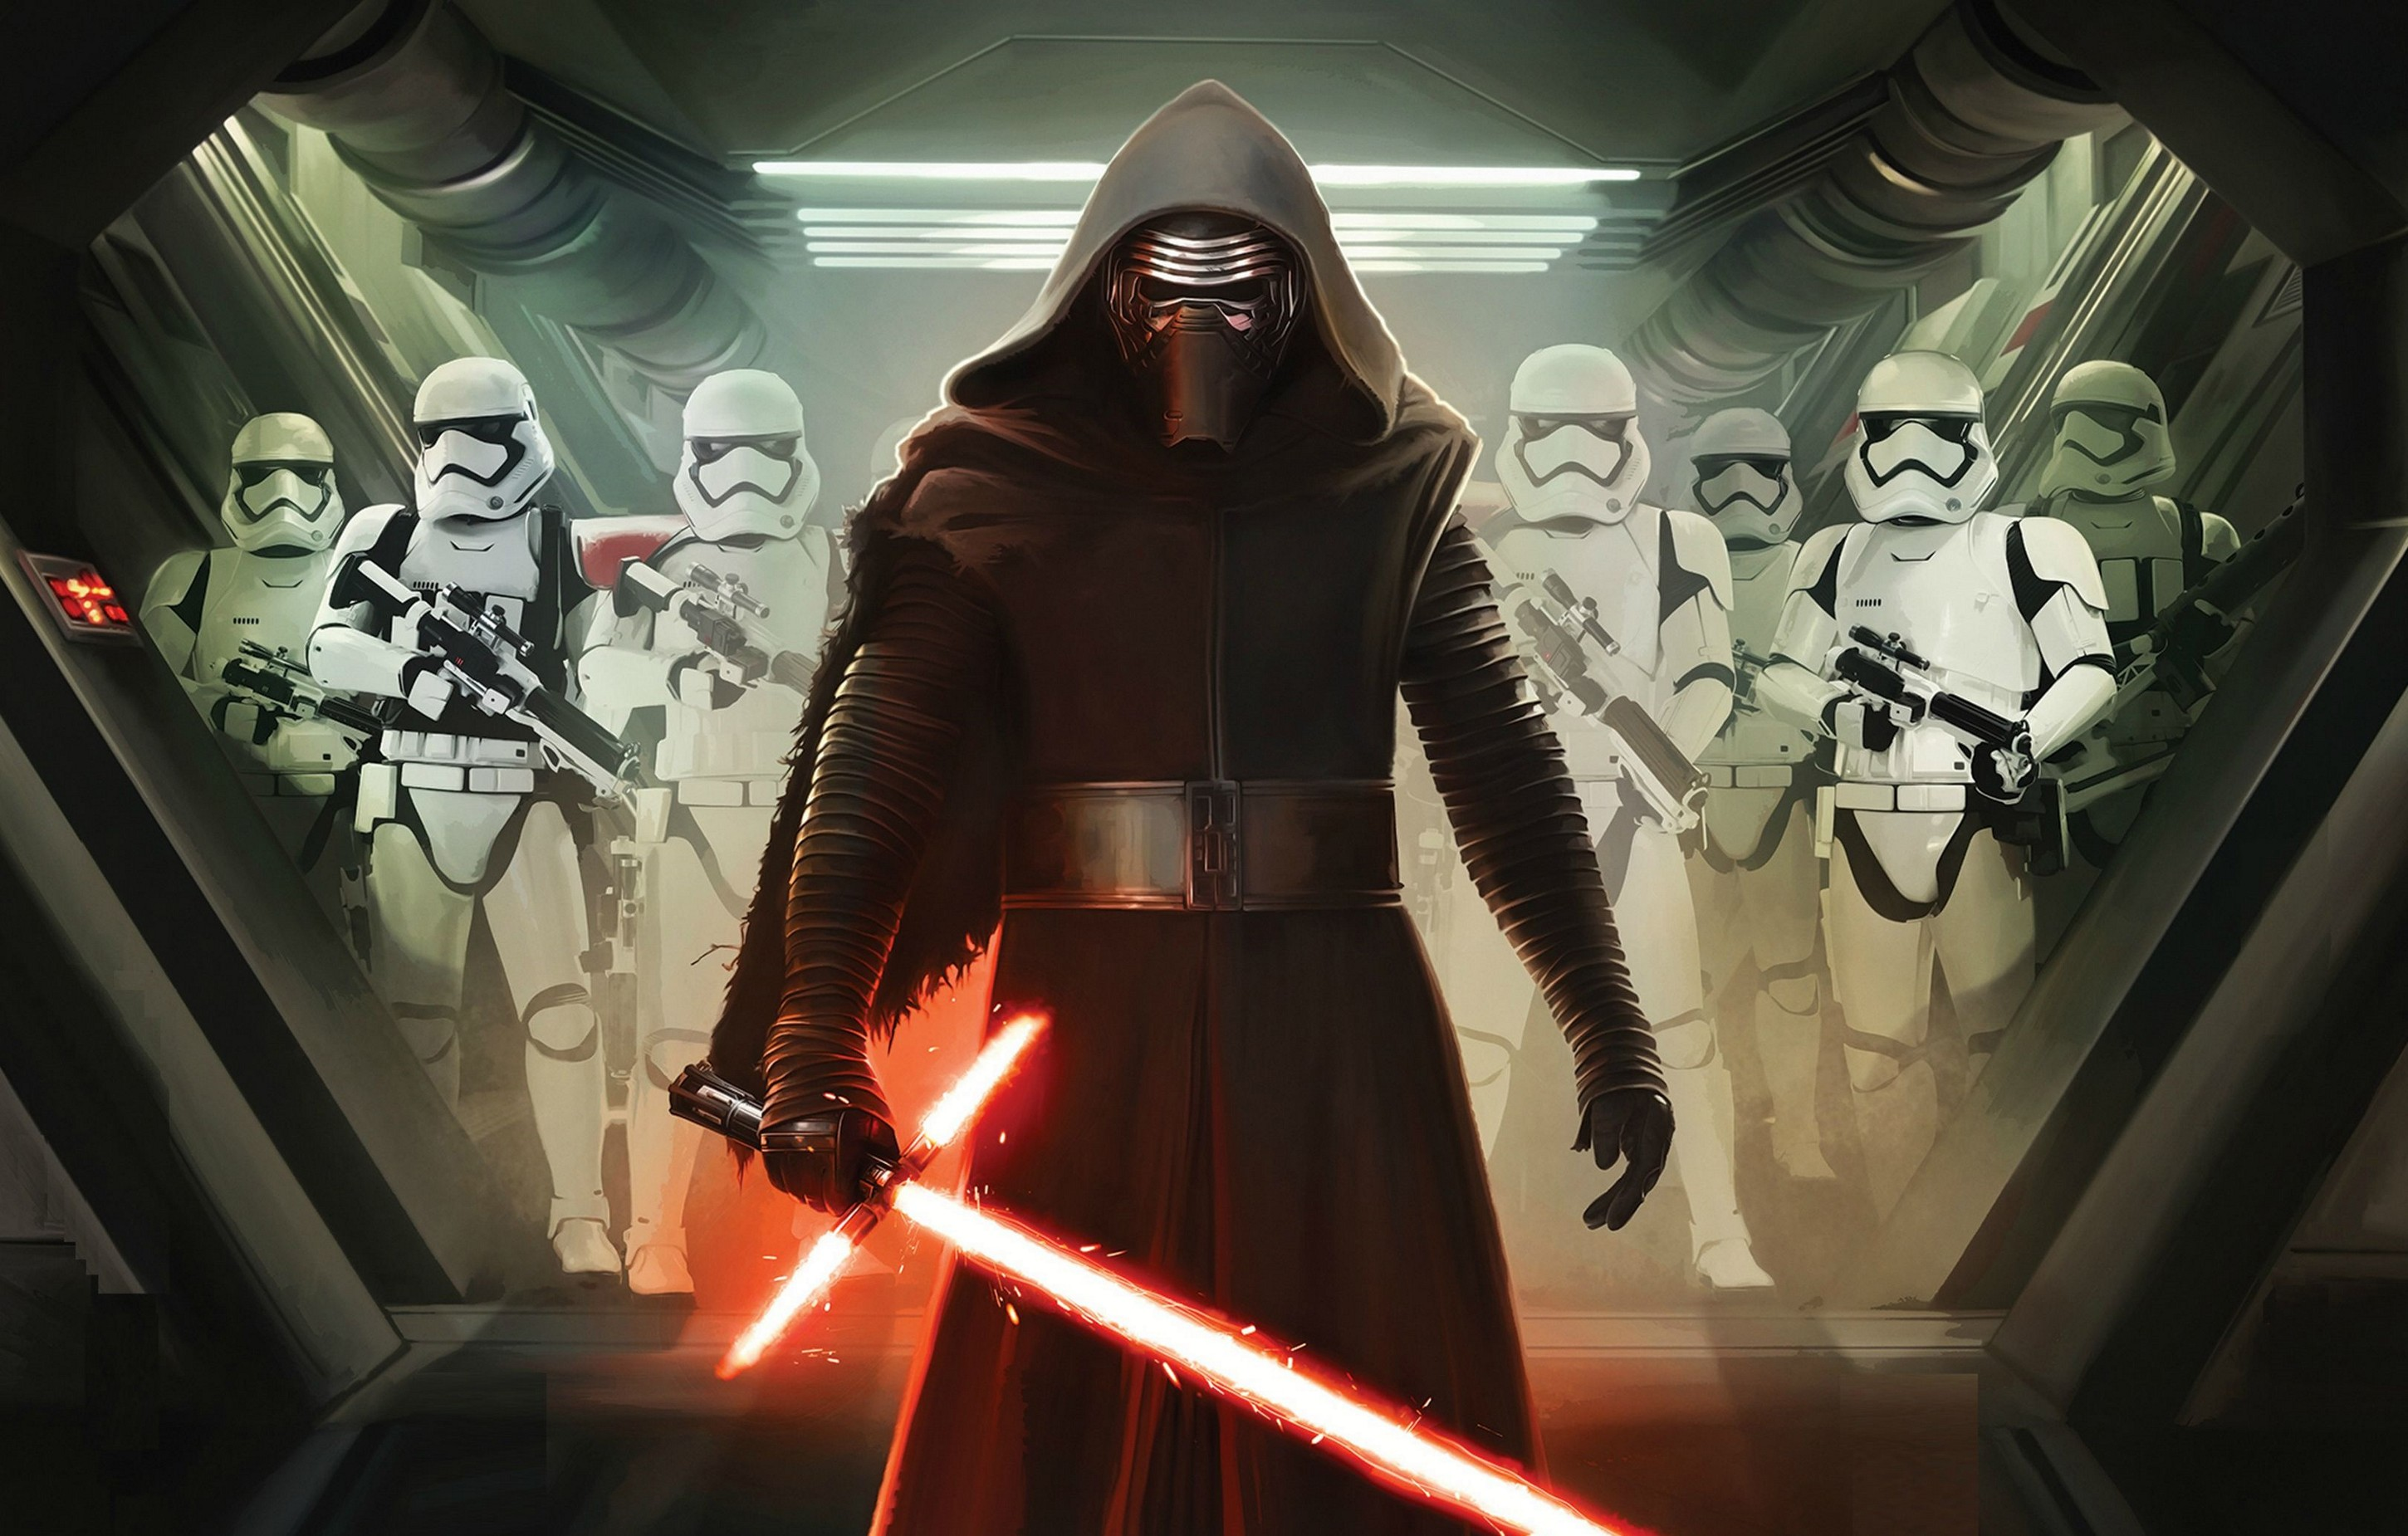 star wars the force awakens backgrounds